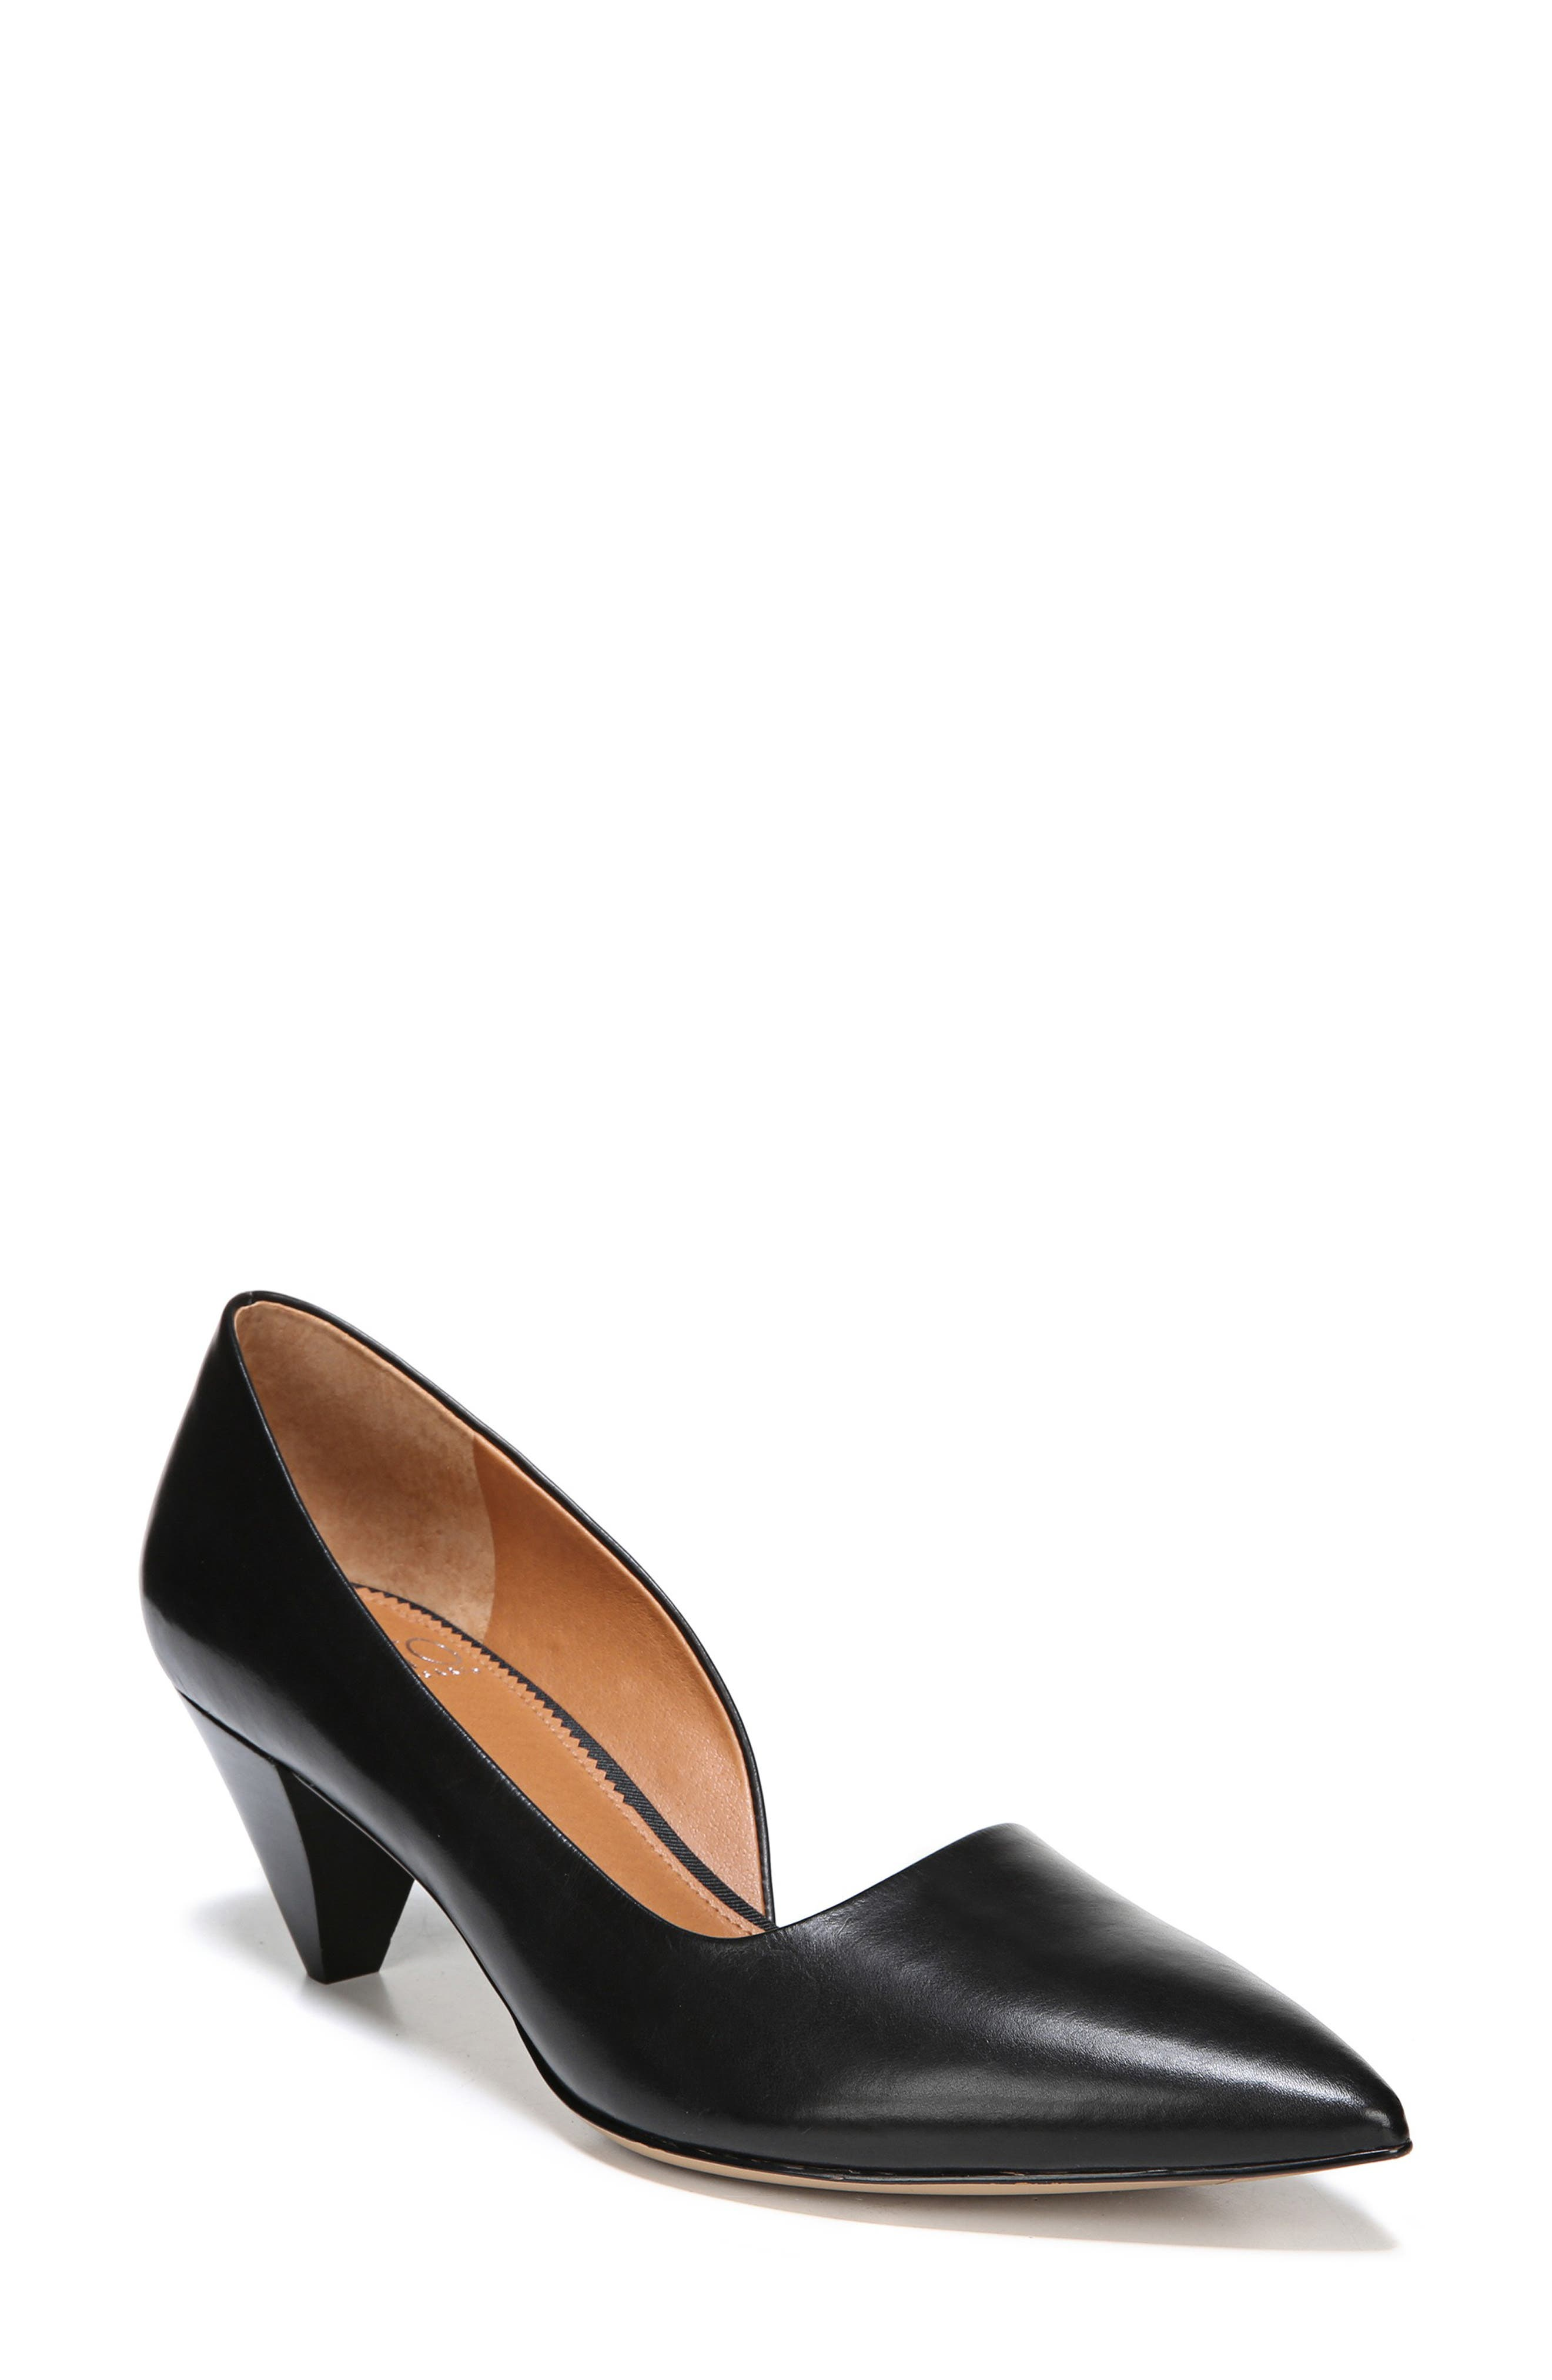 Candid Pump,                             Main thumbnail 1, color,                             BLACK LEATHER